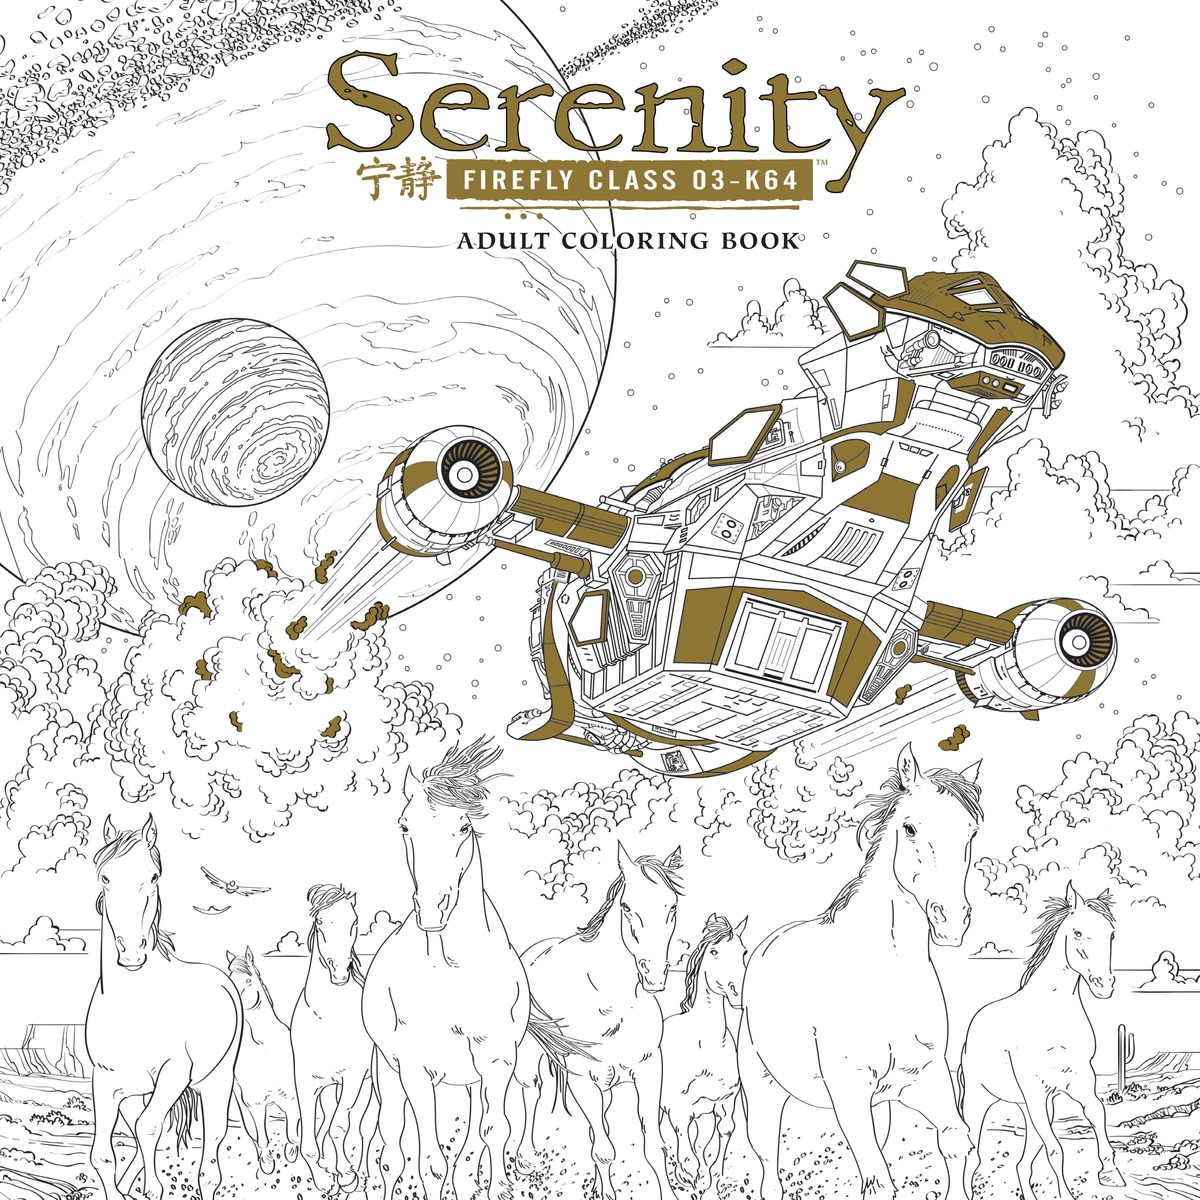 Serenity Adult Coloring Book the dark horse book of monsters